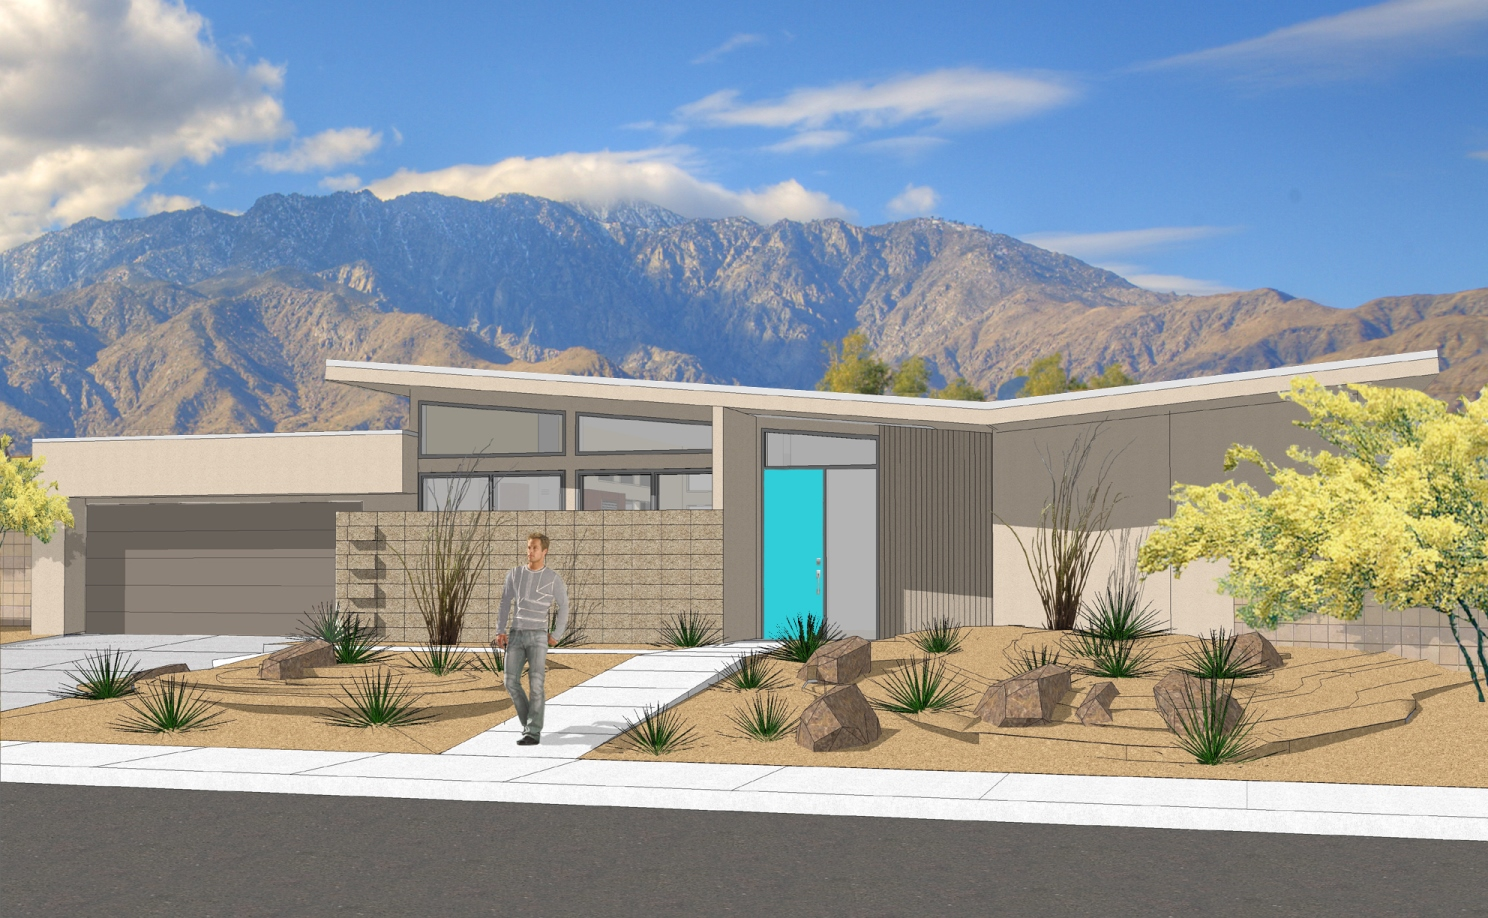 1000 images about butterfly roof and windows on pinterest for New modern homes palm springs